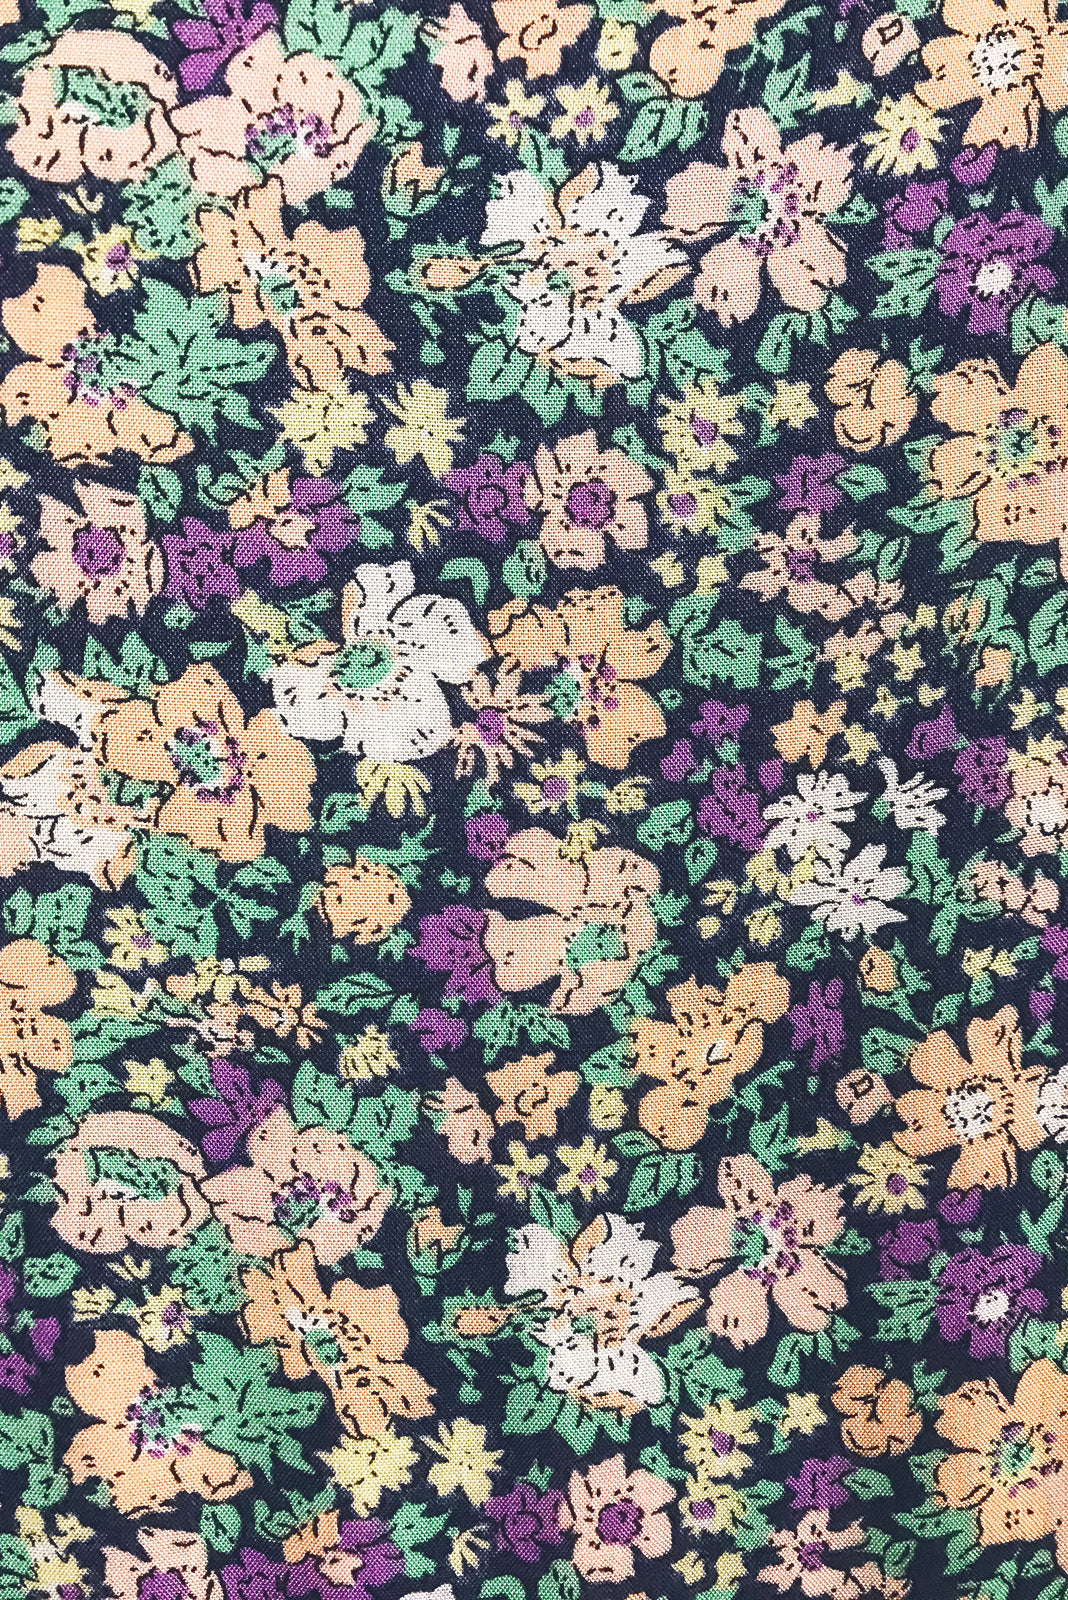 Fabric Swatch of  Georgie Country Mauve Dress featuring 100% rayon in navy base with pink, purple and white floral print.